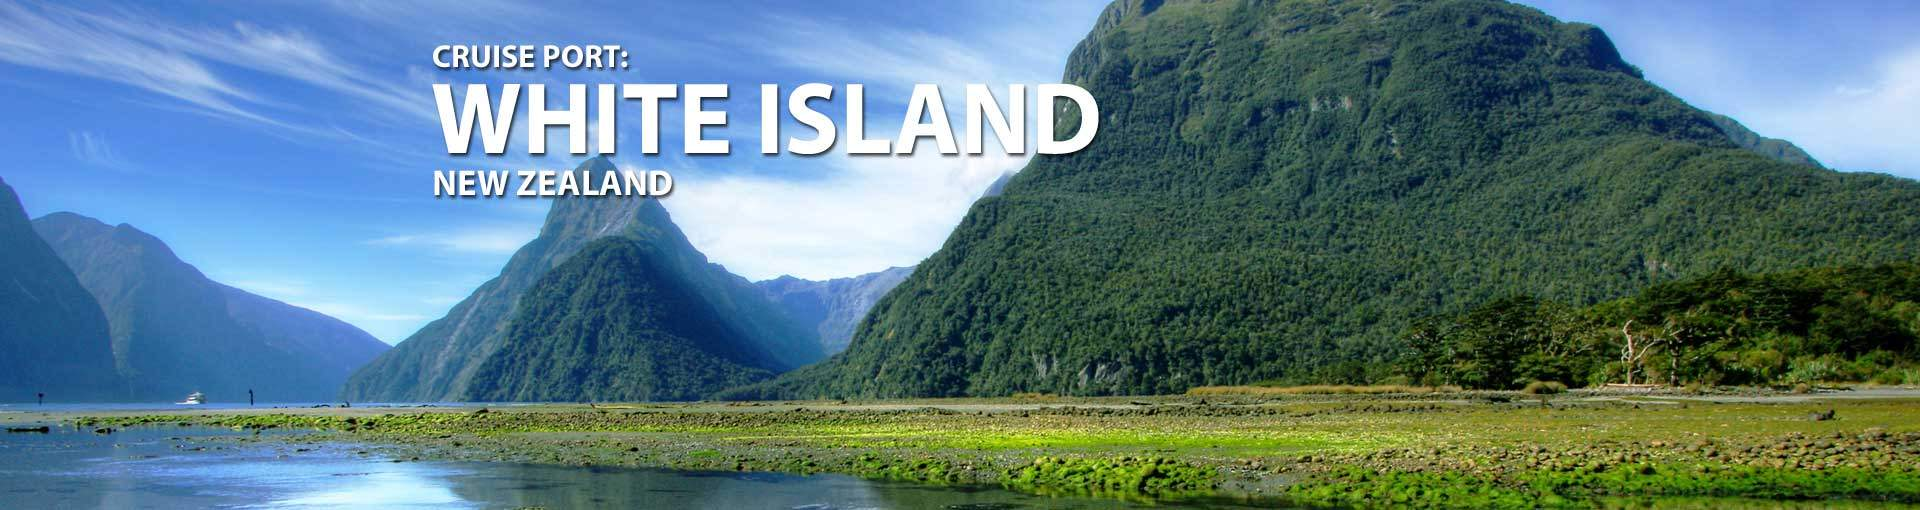 Cruises to White Island, New Zealand